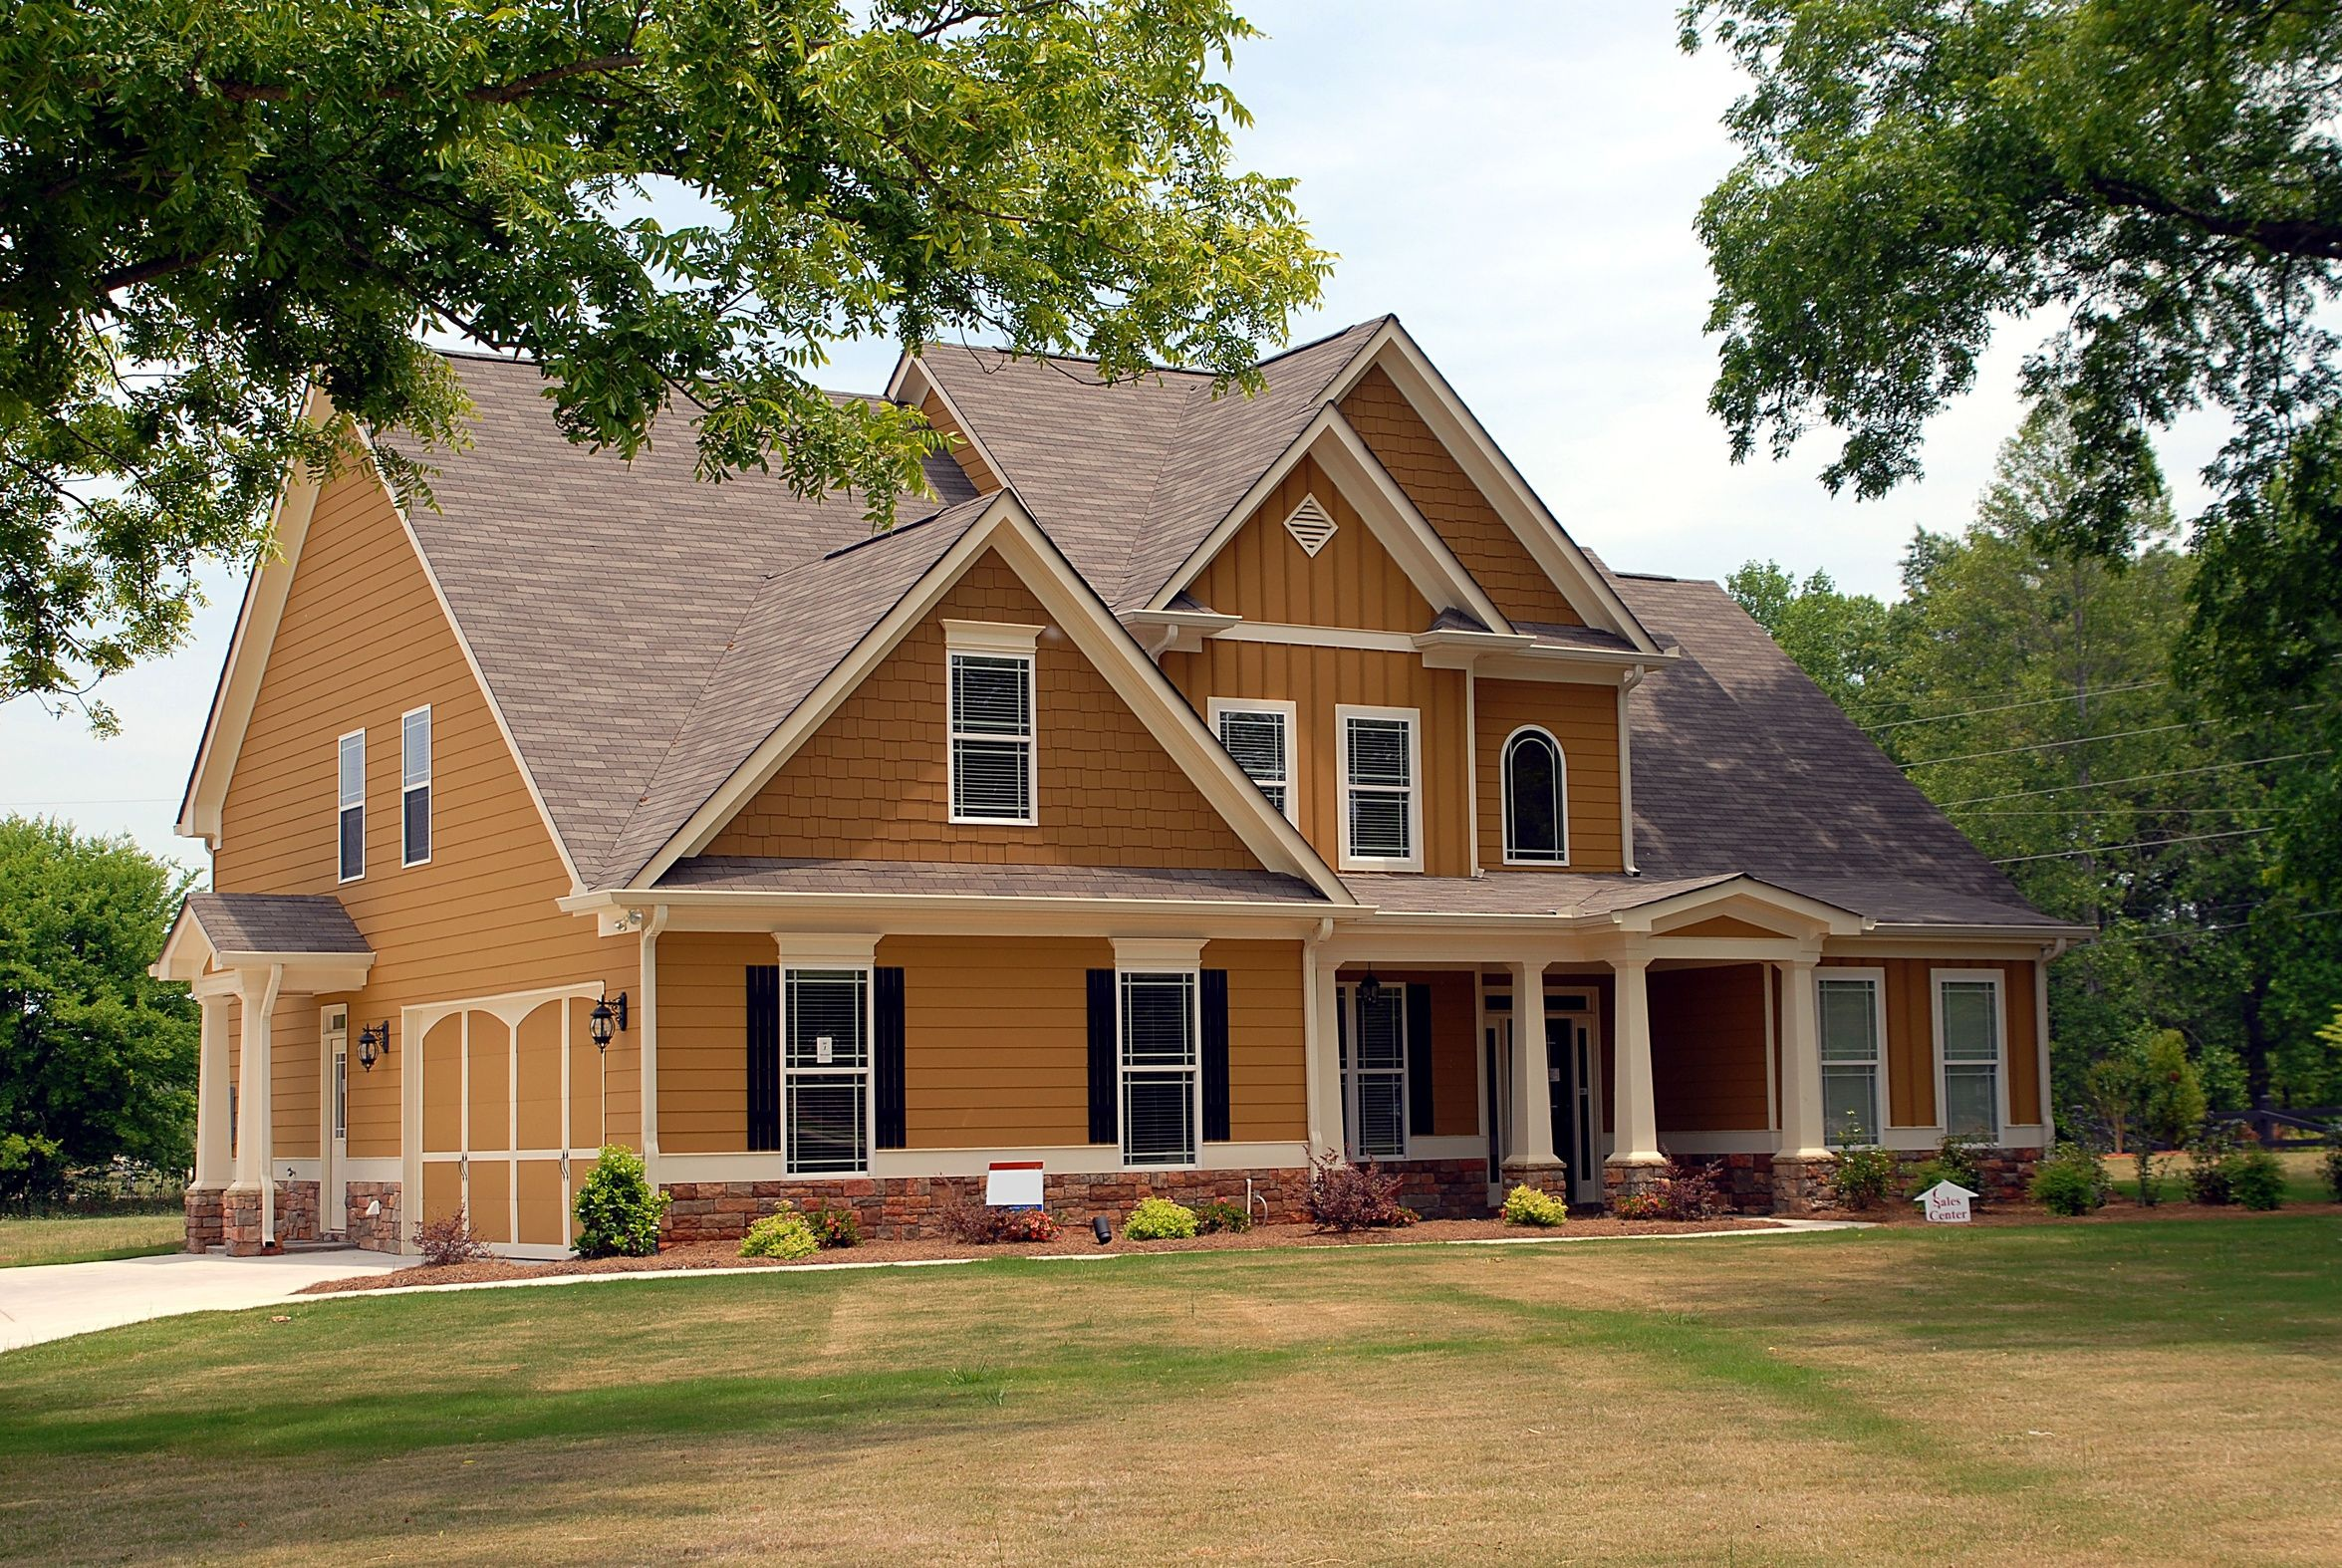 Exterior paint ideas brown - Find This Pin And More On Exterior Paint Ideas For Stone Homes